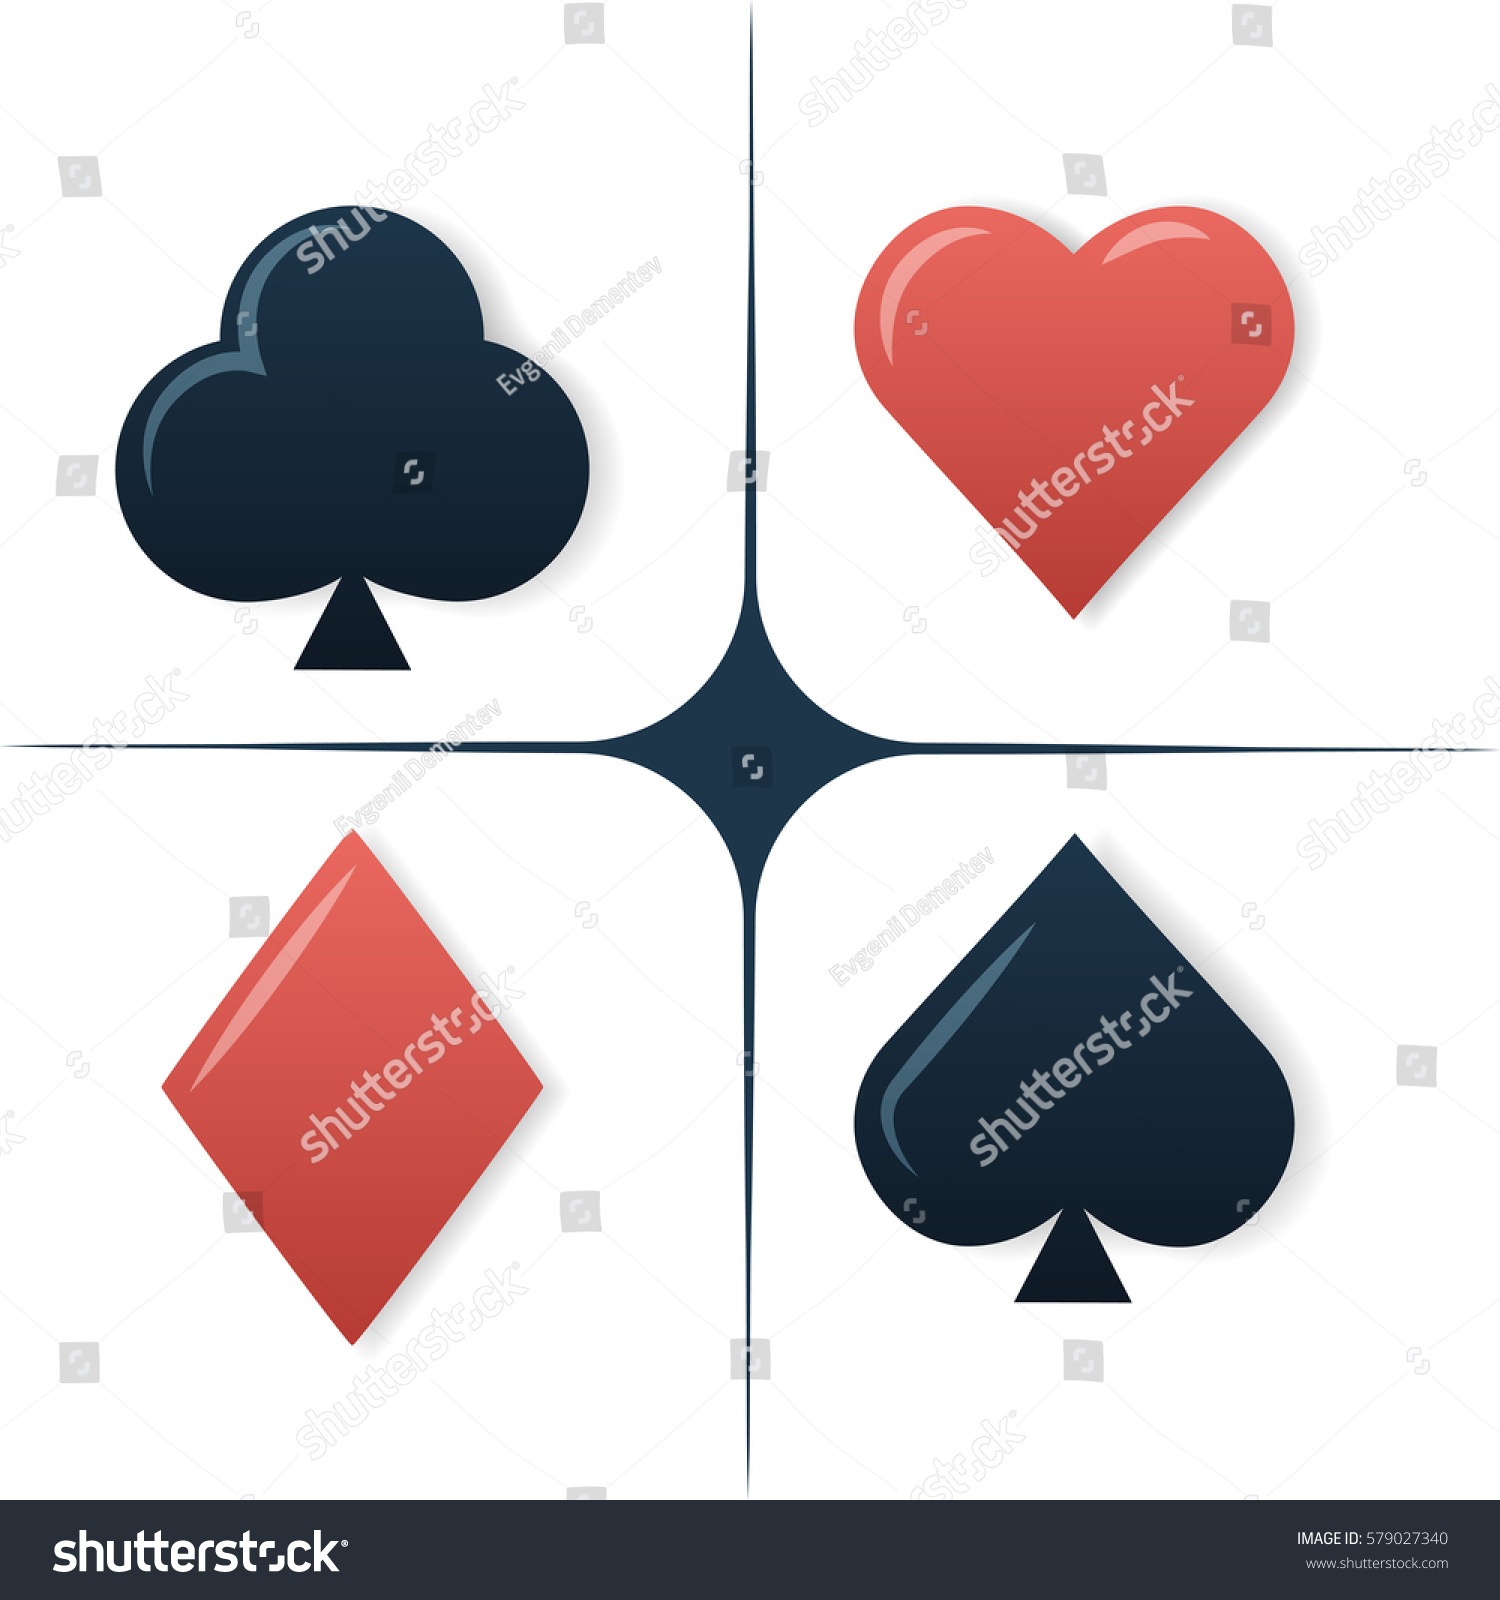 Colorful playing cards symbols set on stock vector 579027340 colorful playing cards symbols set on white background biocorpaavc